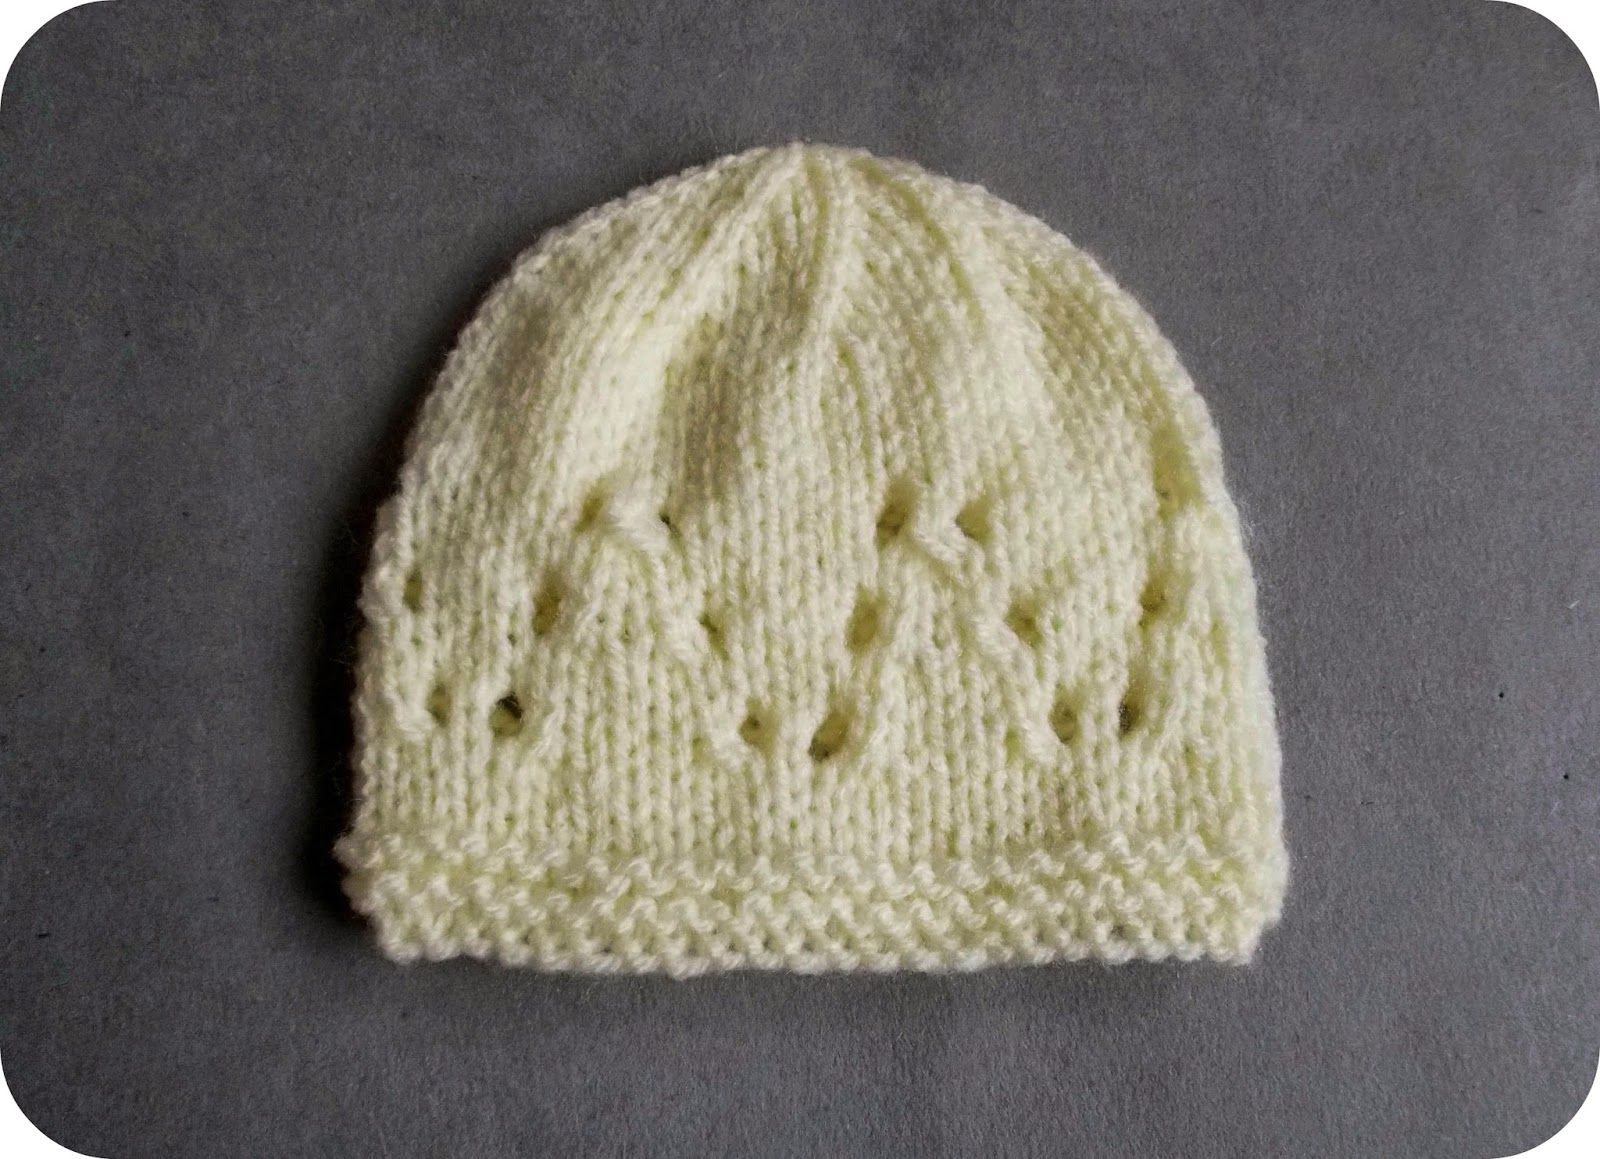 Preemie Hats to match Lazy Daisy All-in-One Preemie Tops Matching ...